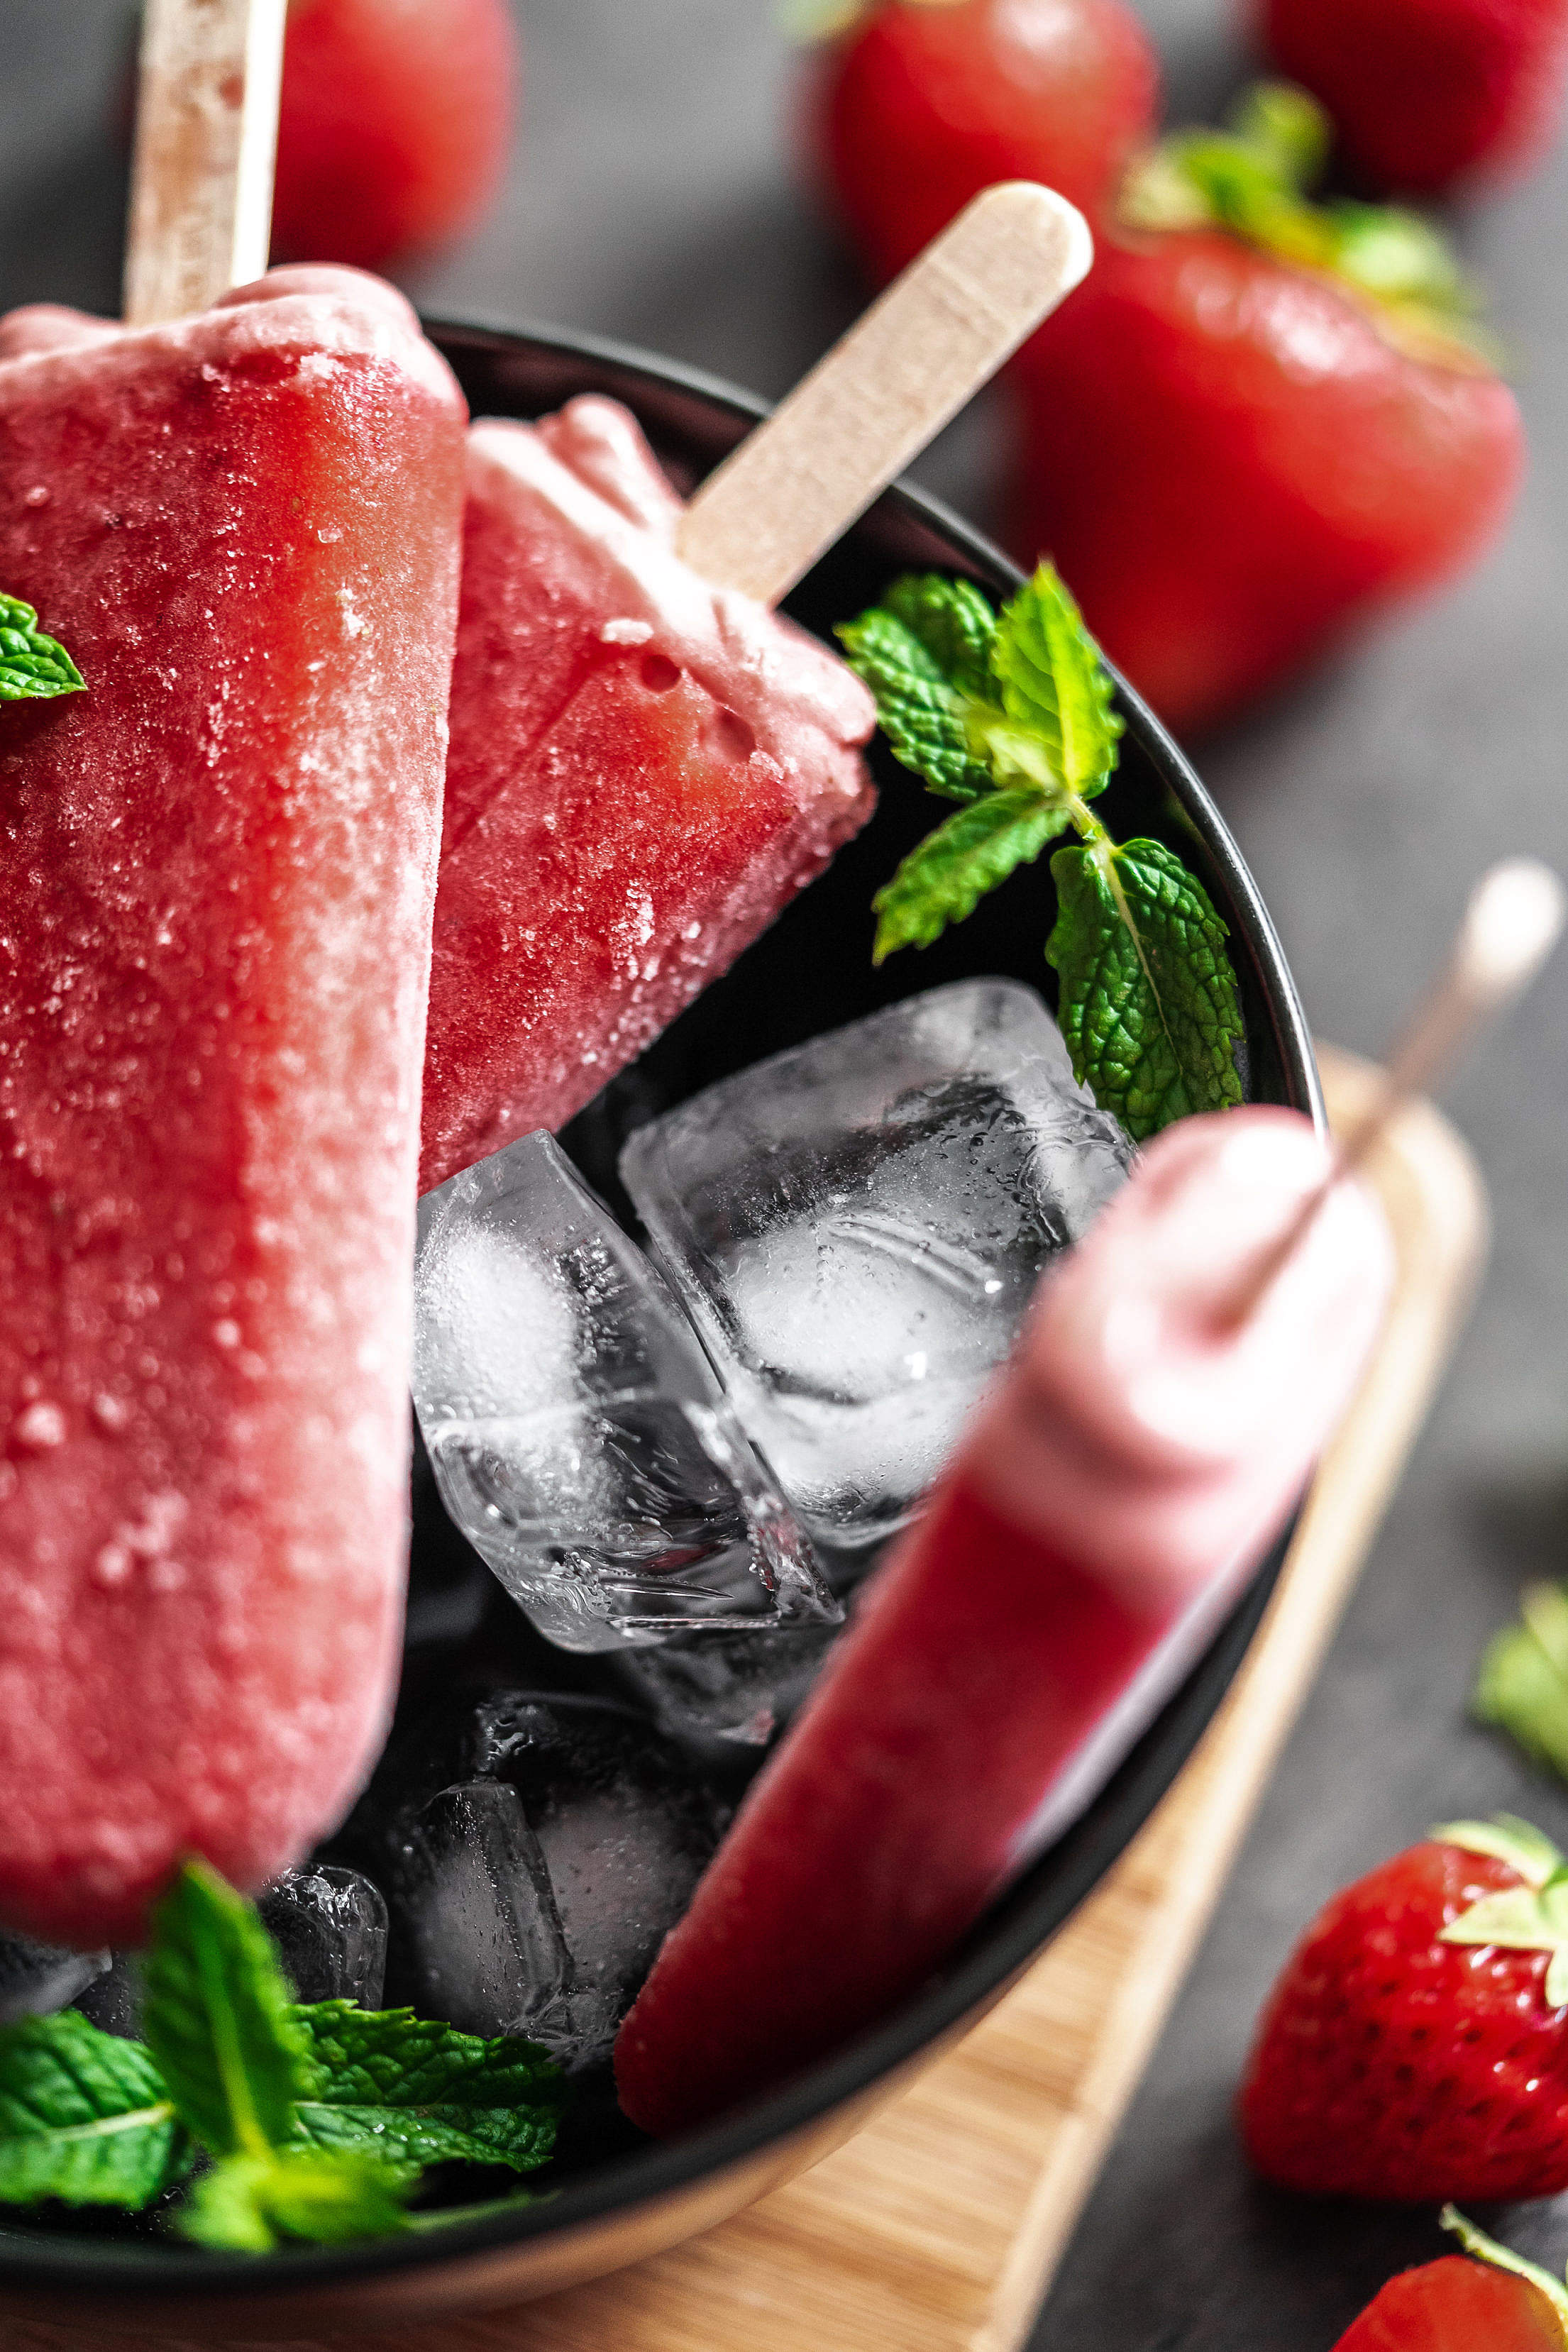 Strawberry Ice Lollies in a Black Bowl Free Stock Photo